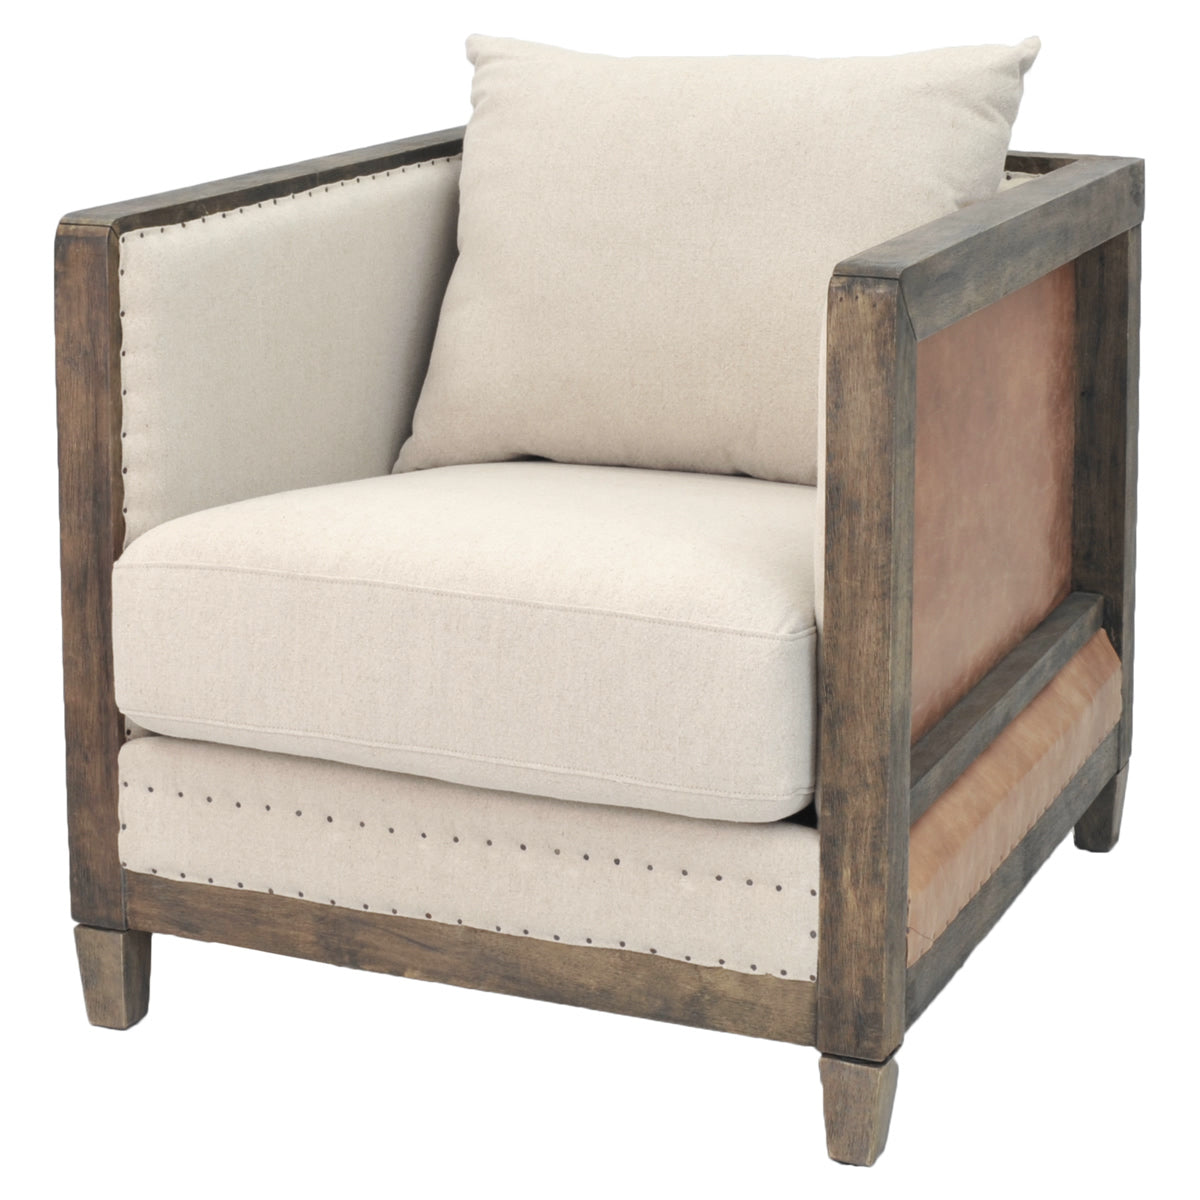 Hartland Arm Chair by New Pacific Direct - 9900003